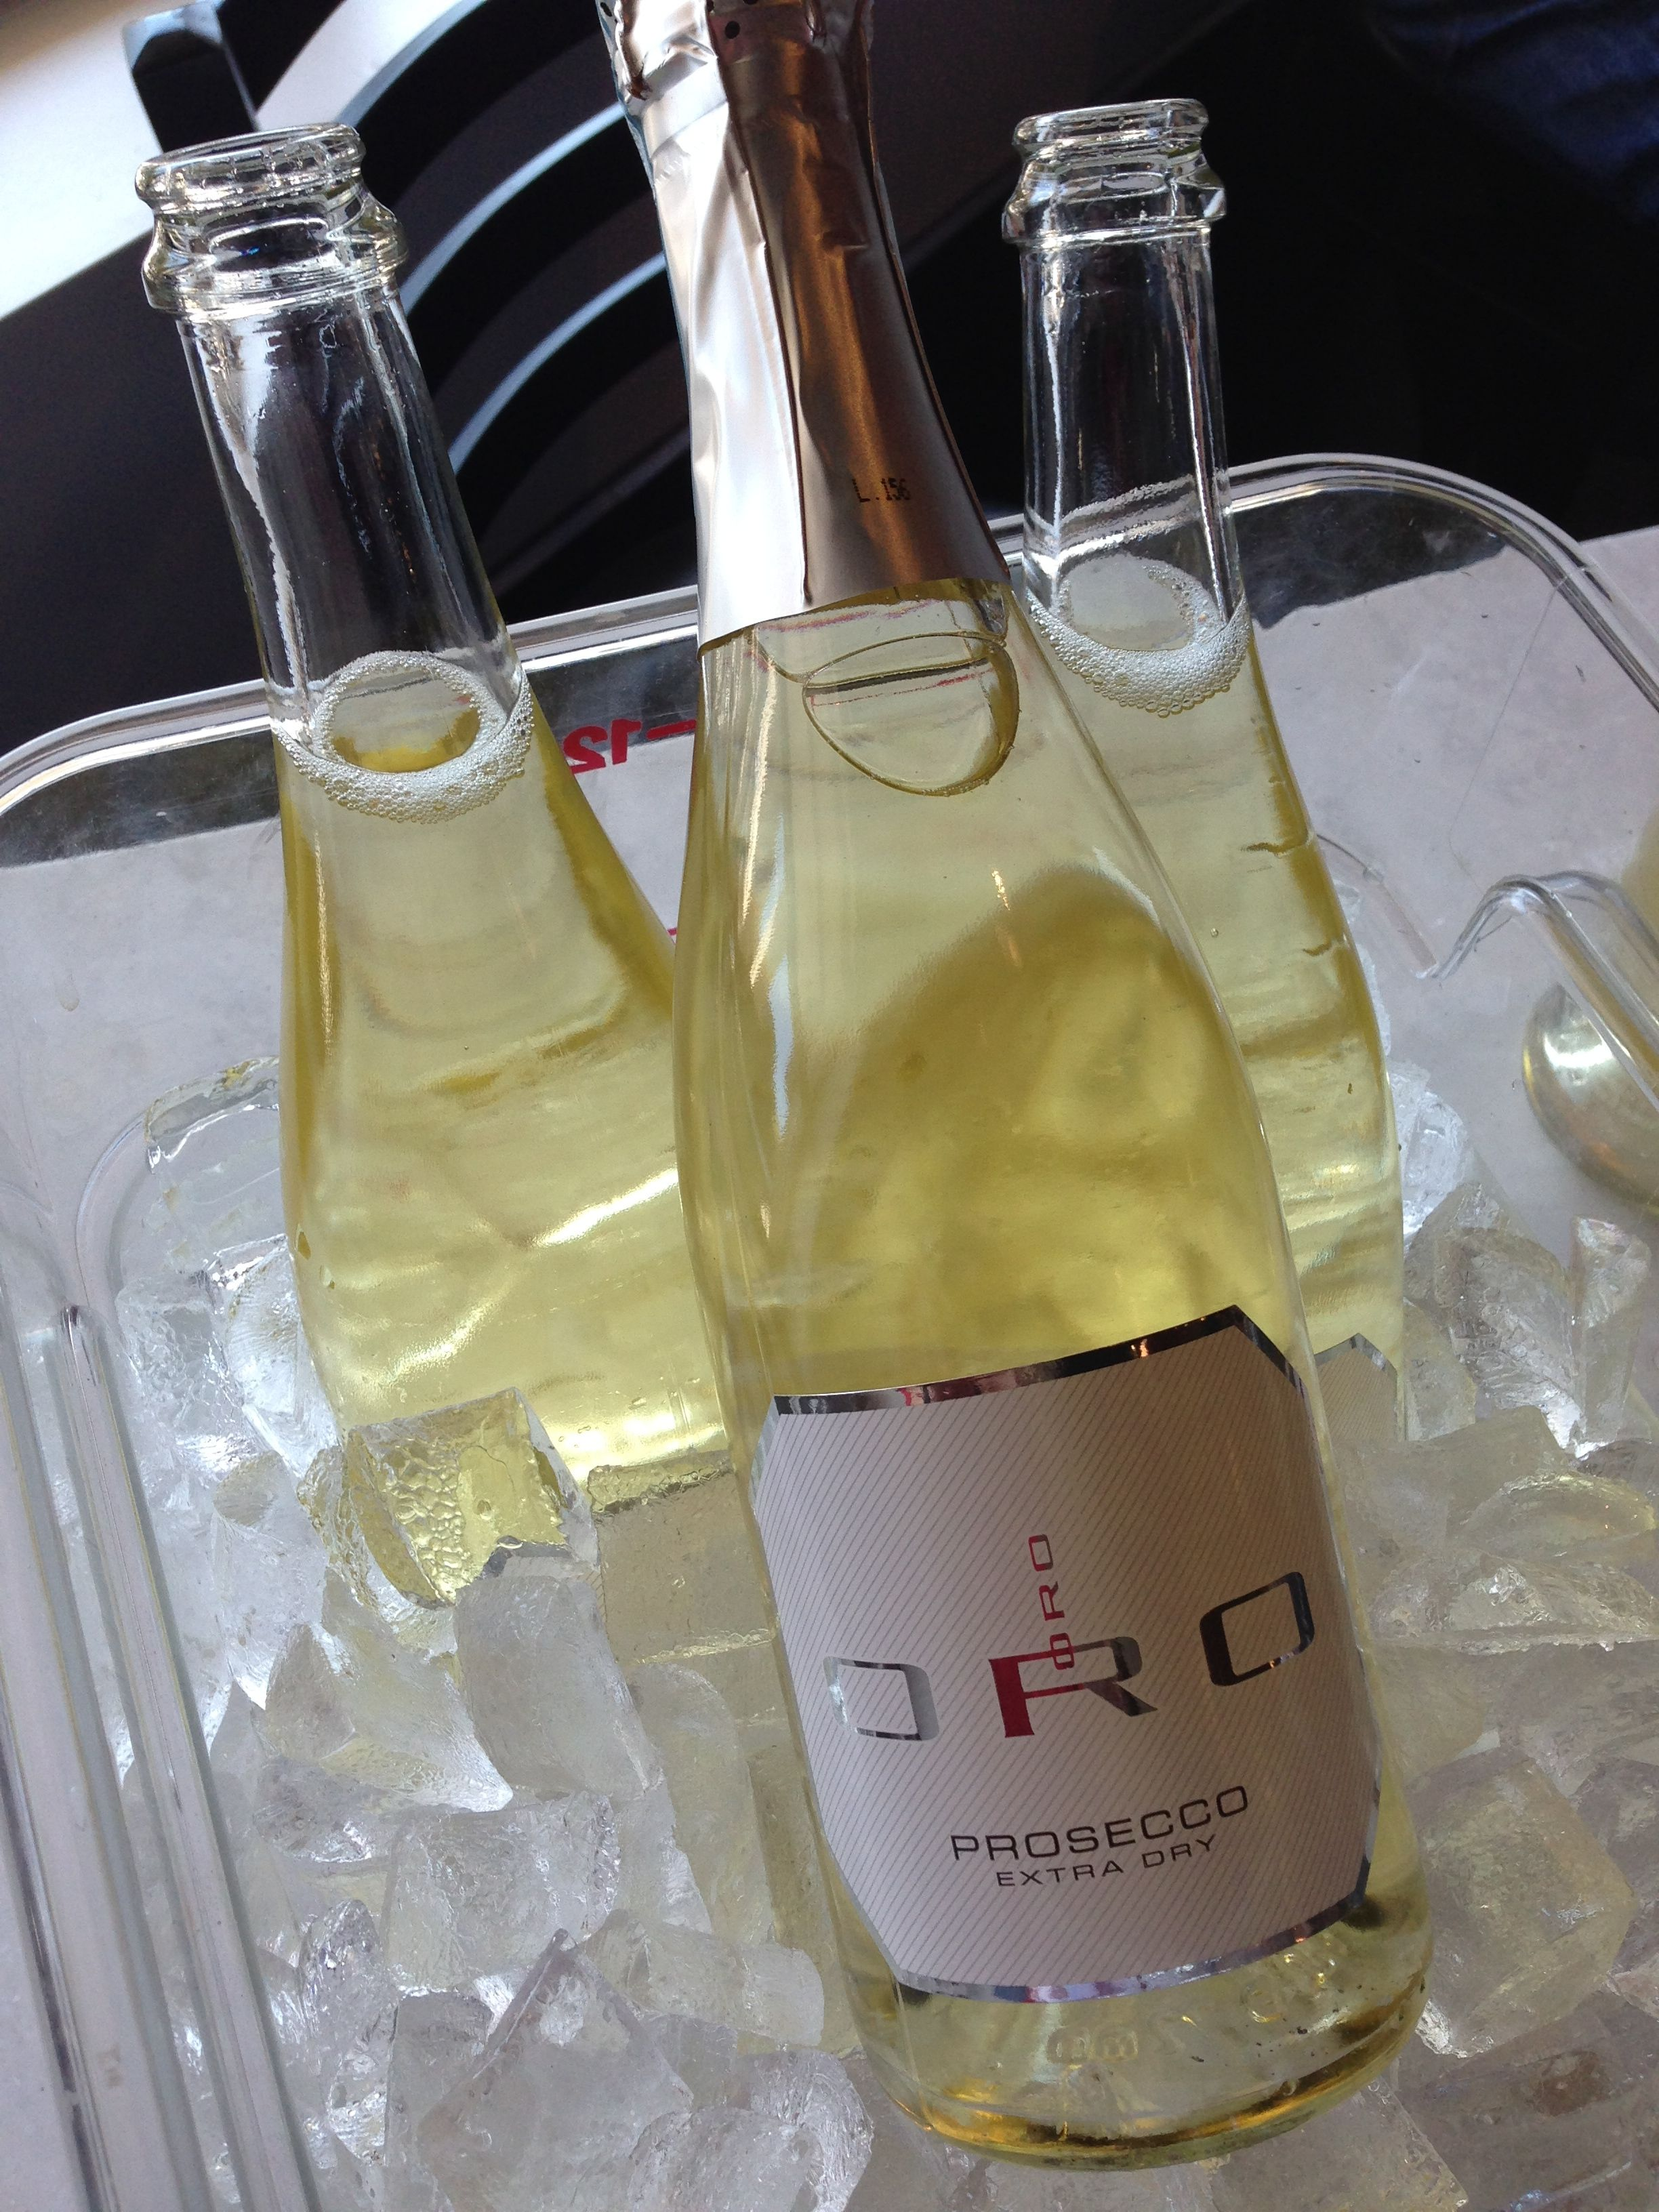 ORO PROSECCO  https://www.facebook.com/pages/Vinofiamma/170631406315947?ref=br_rs